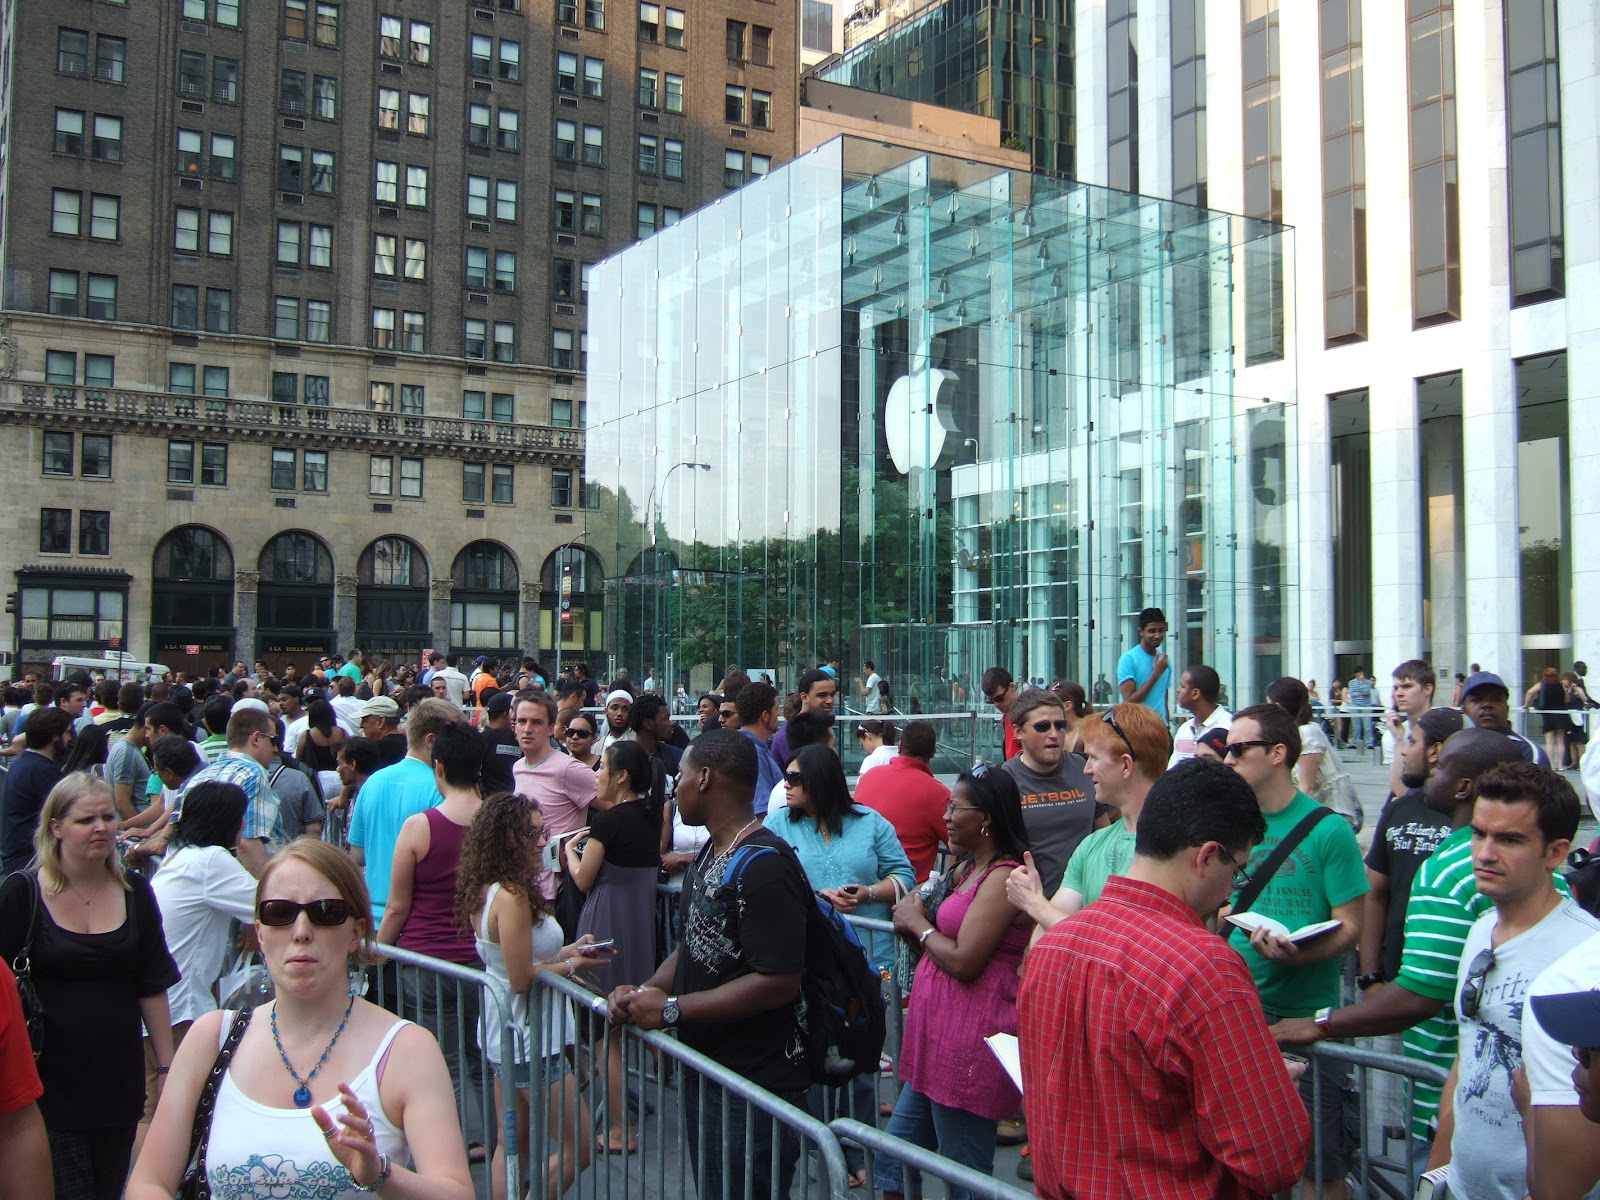 Line_at_Apple_Store_in_NYC.jpg